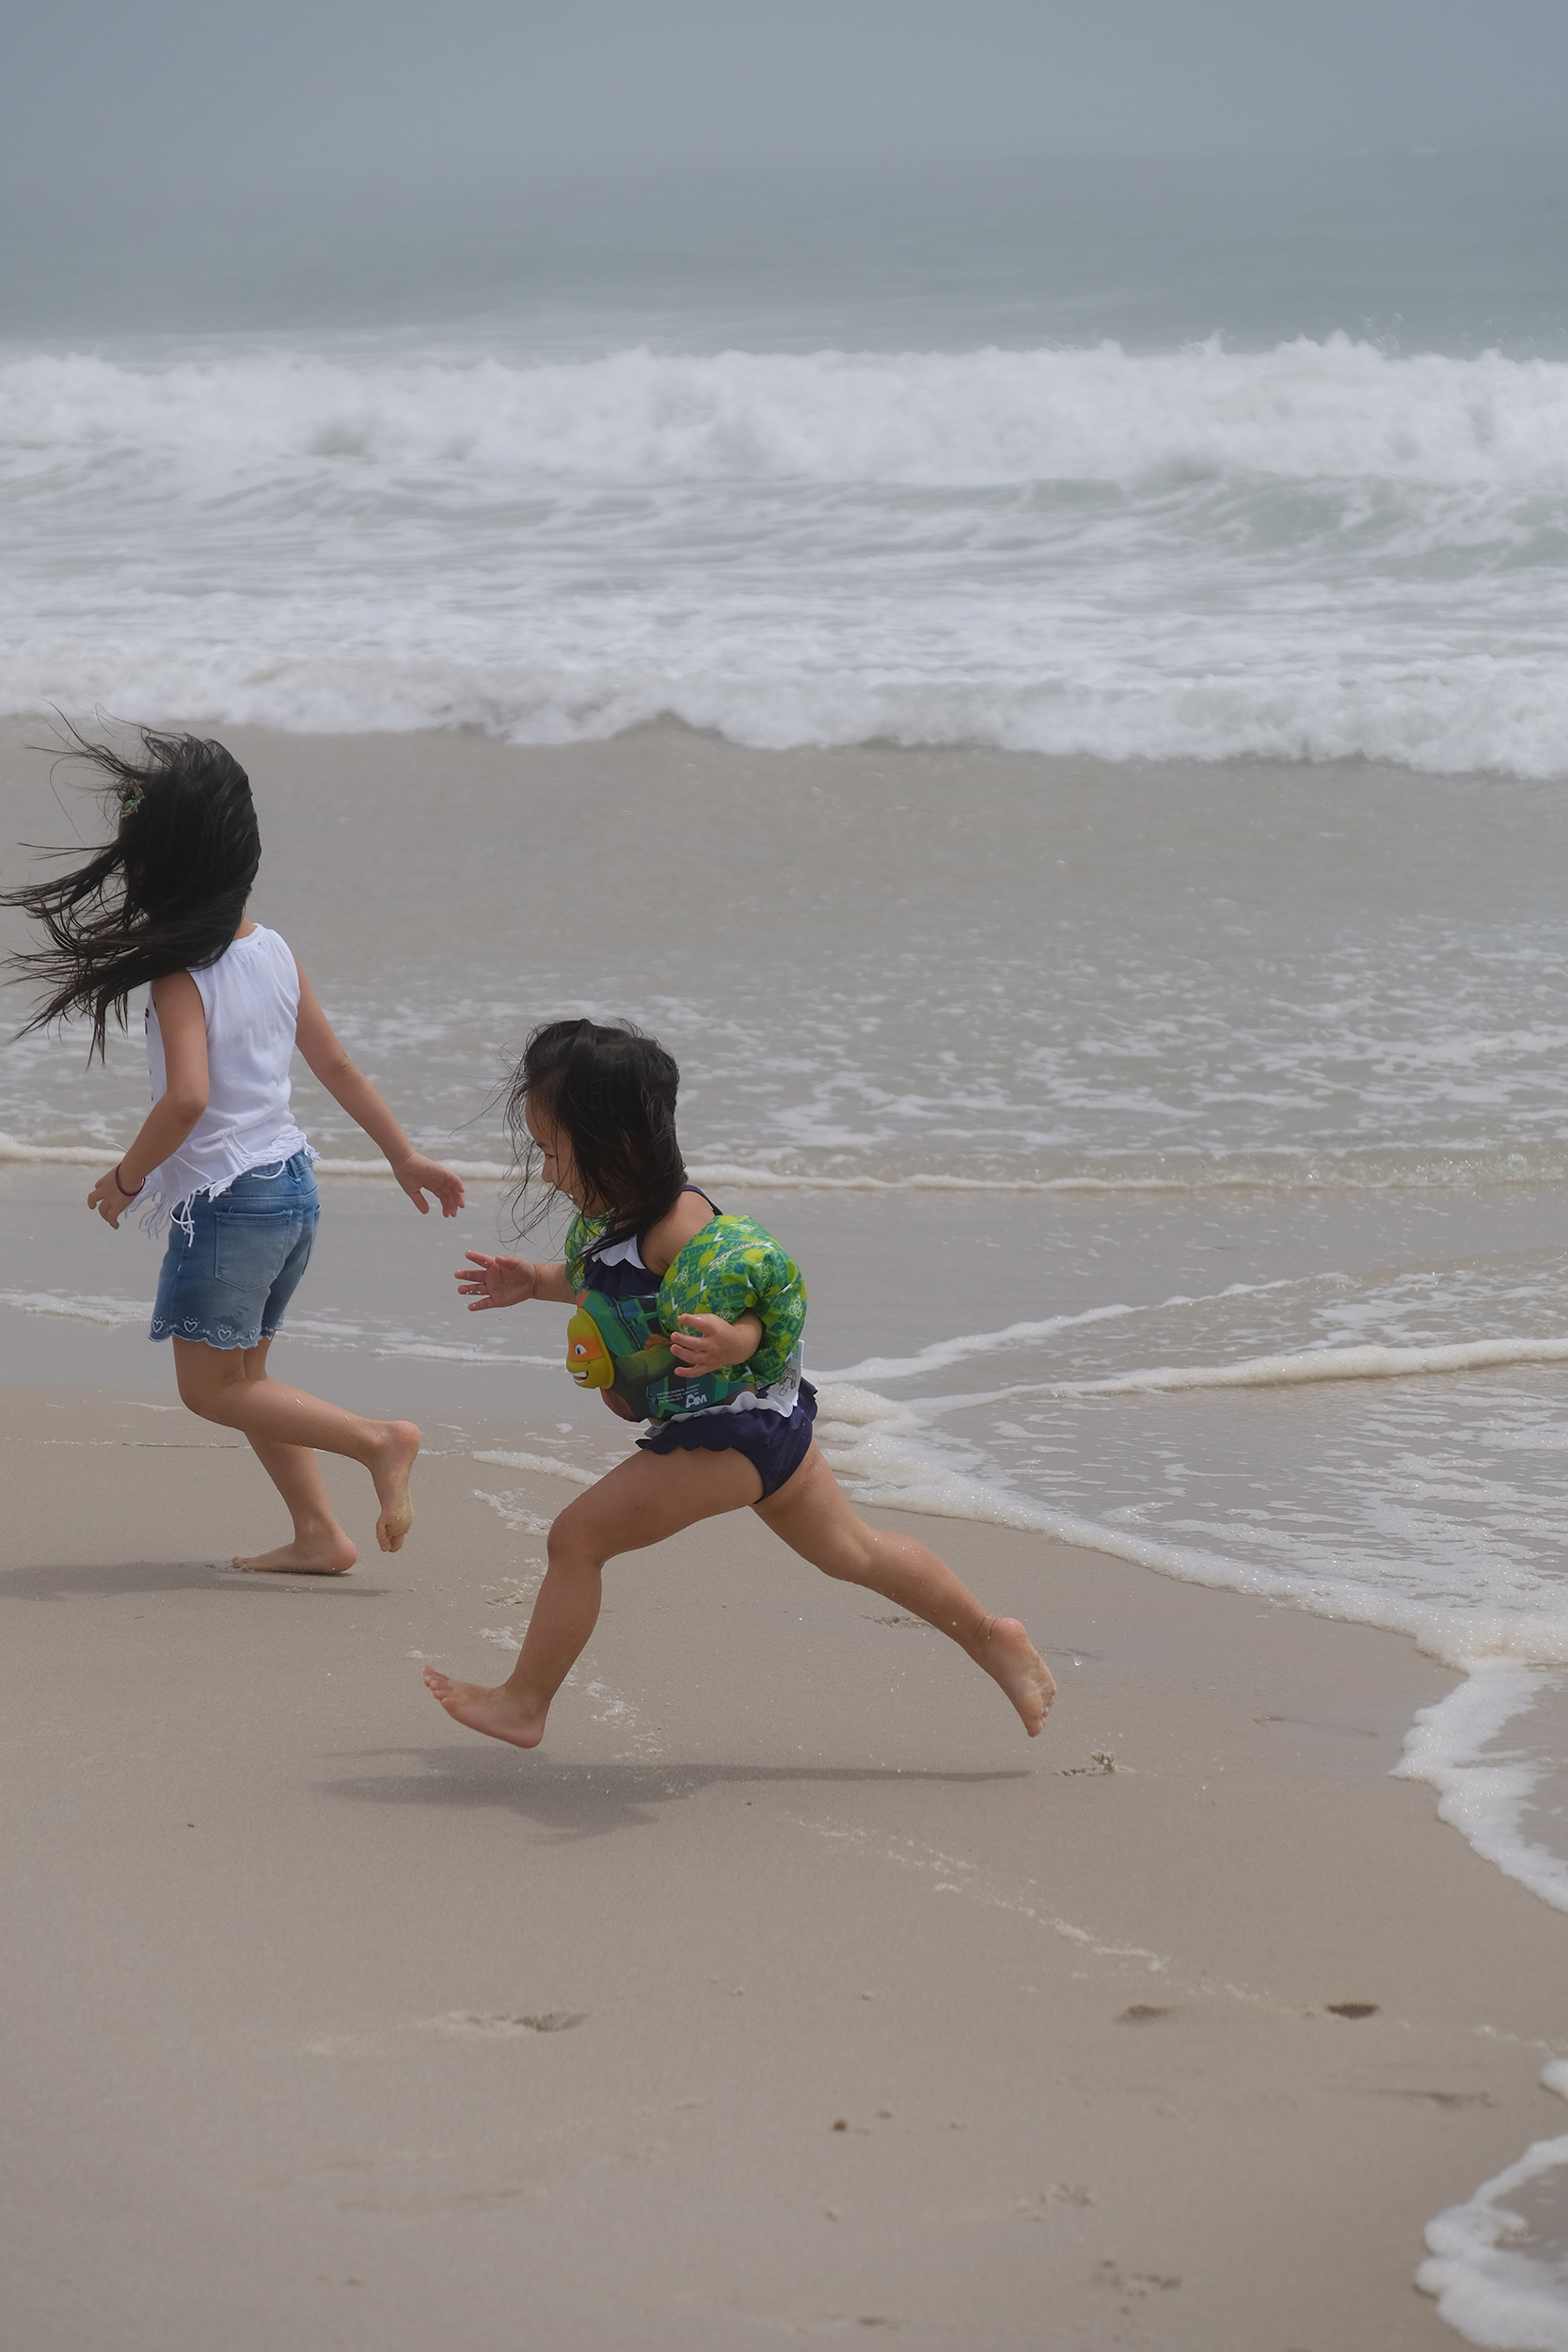 More fun at  Lido Beach  this summer. My little one using the awesome